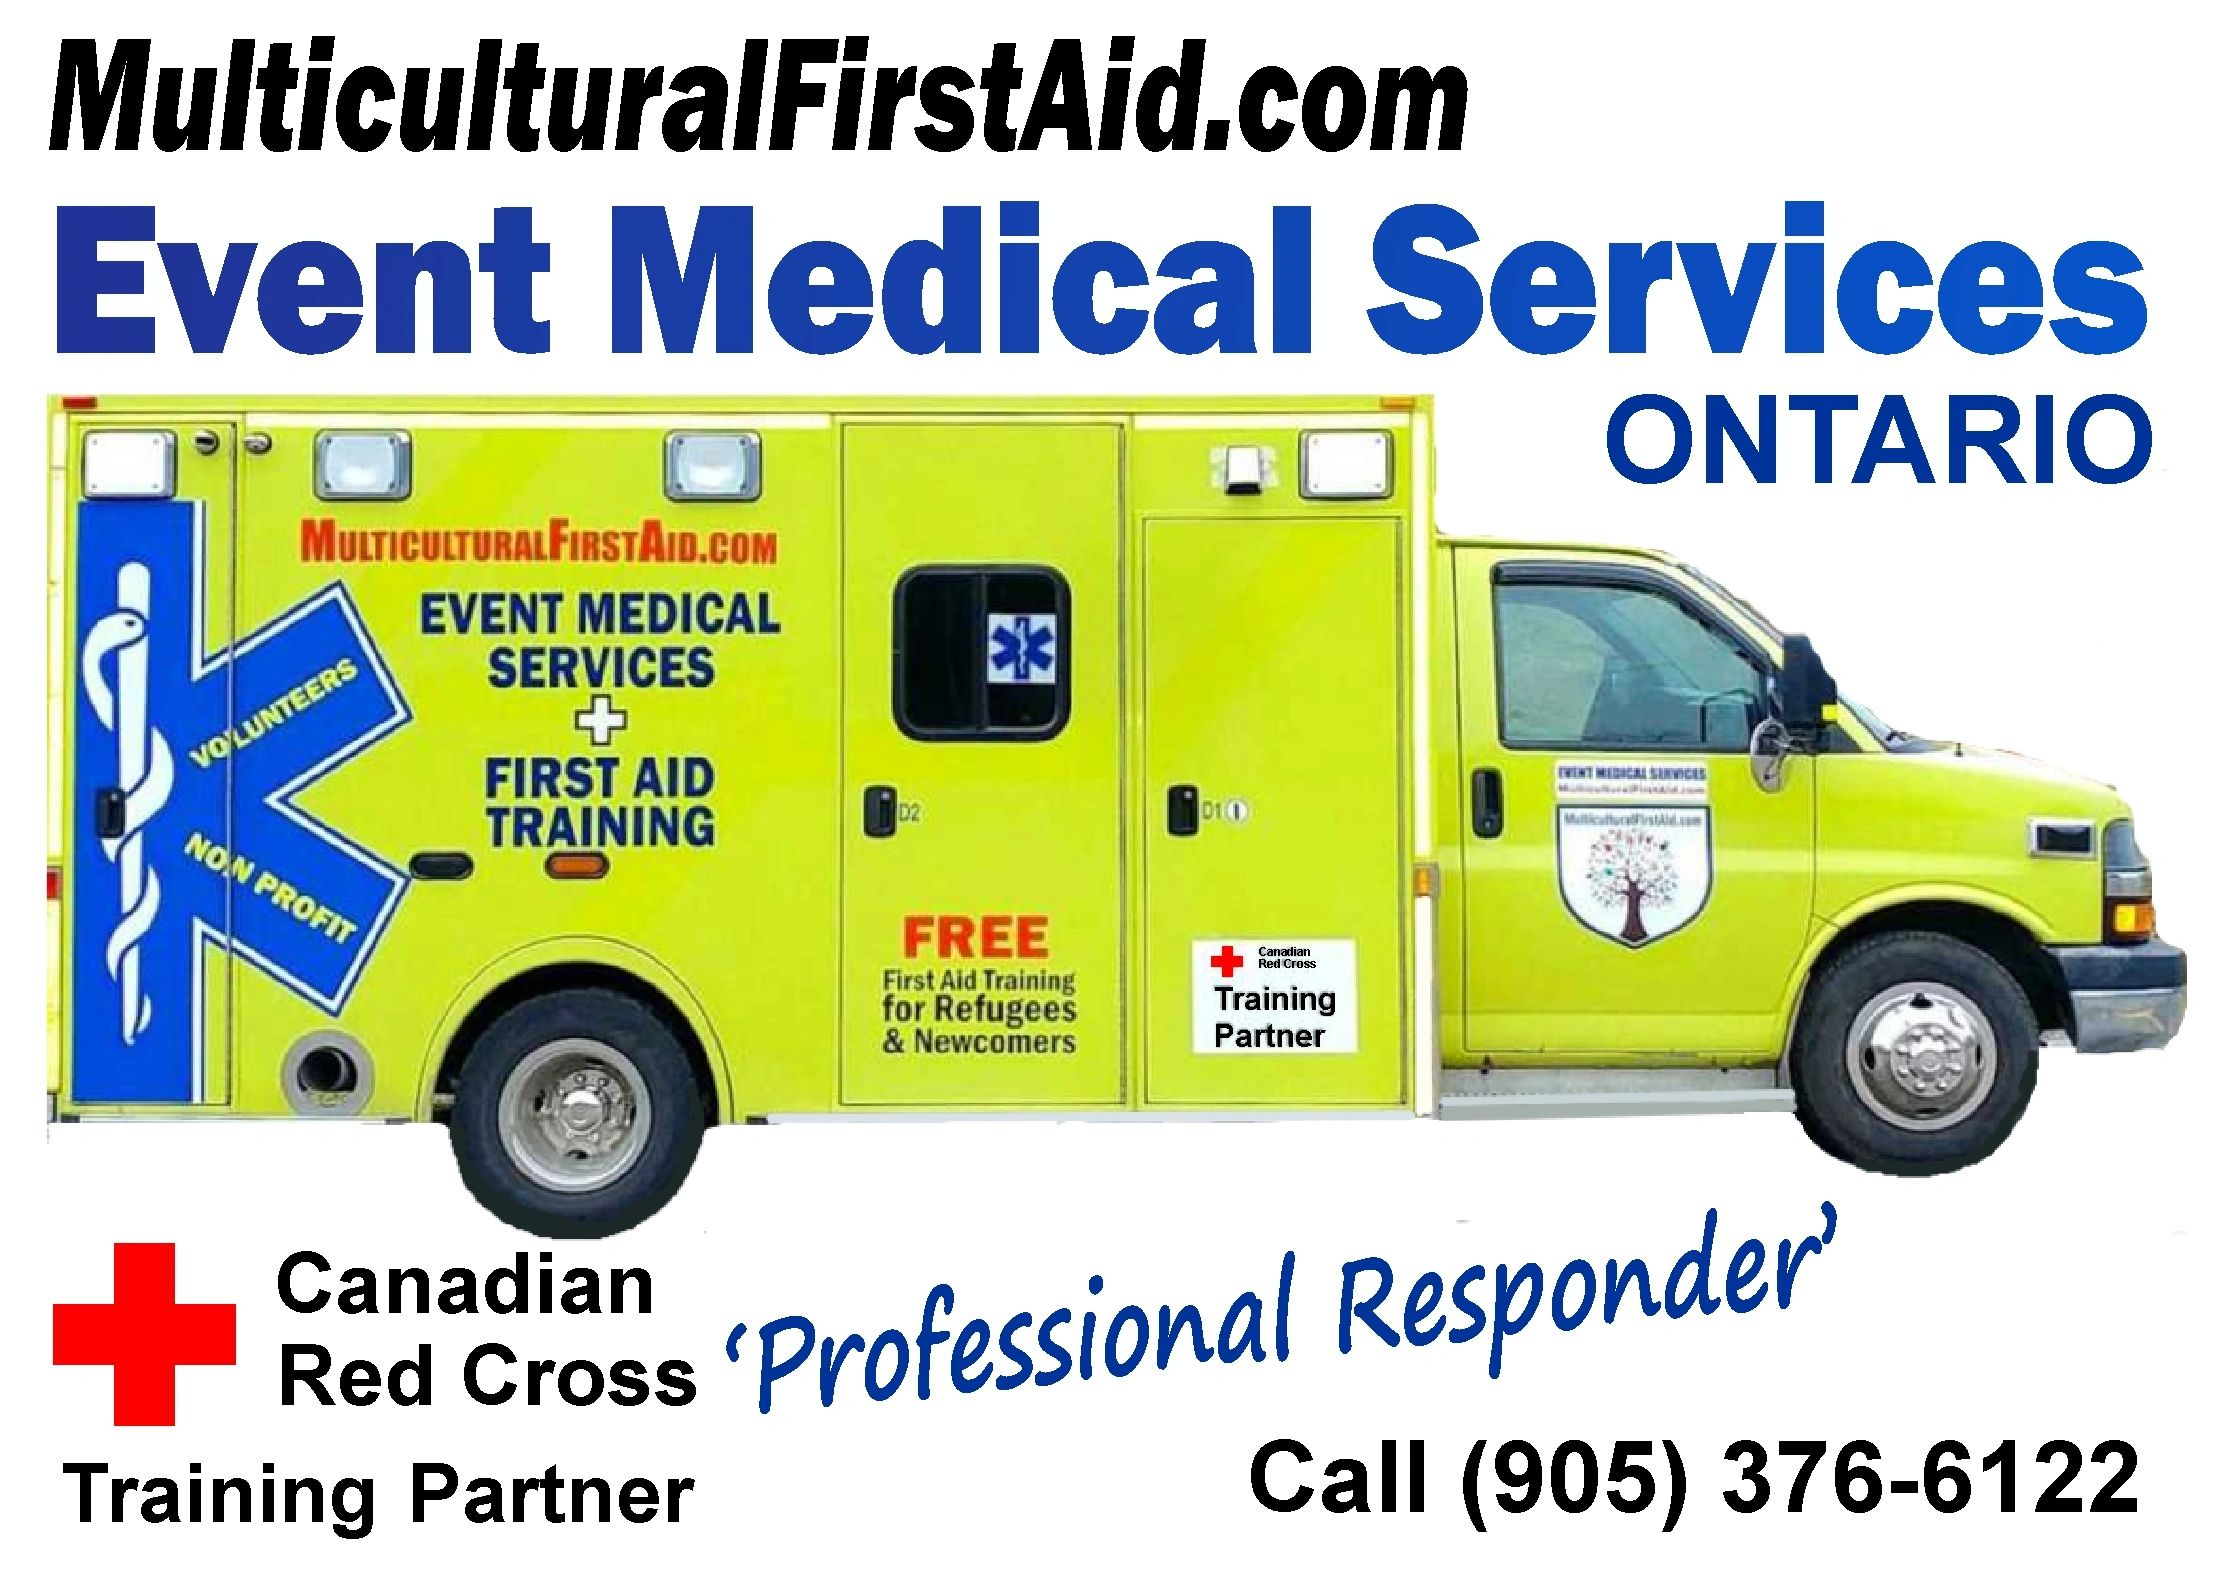 MulticulturalFirstAid com - Home